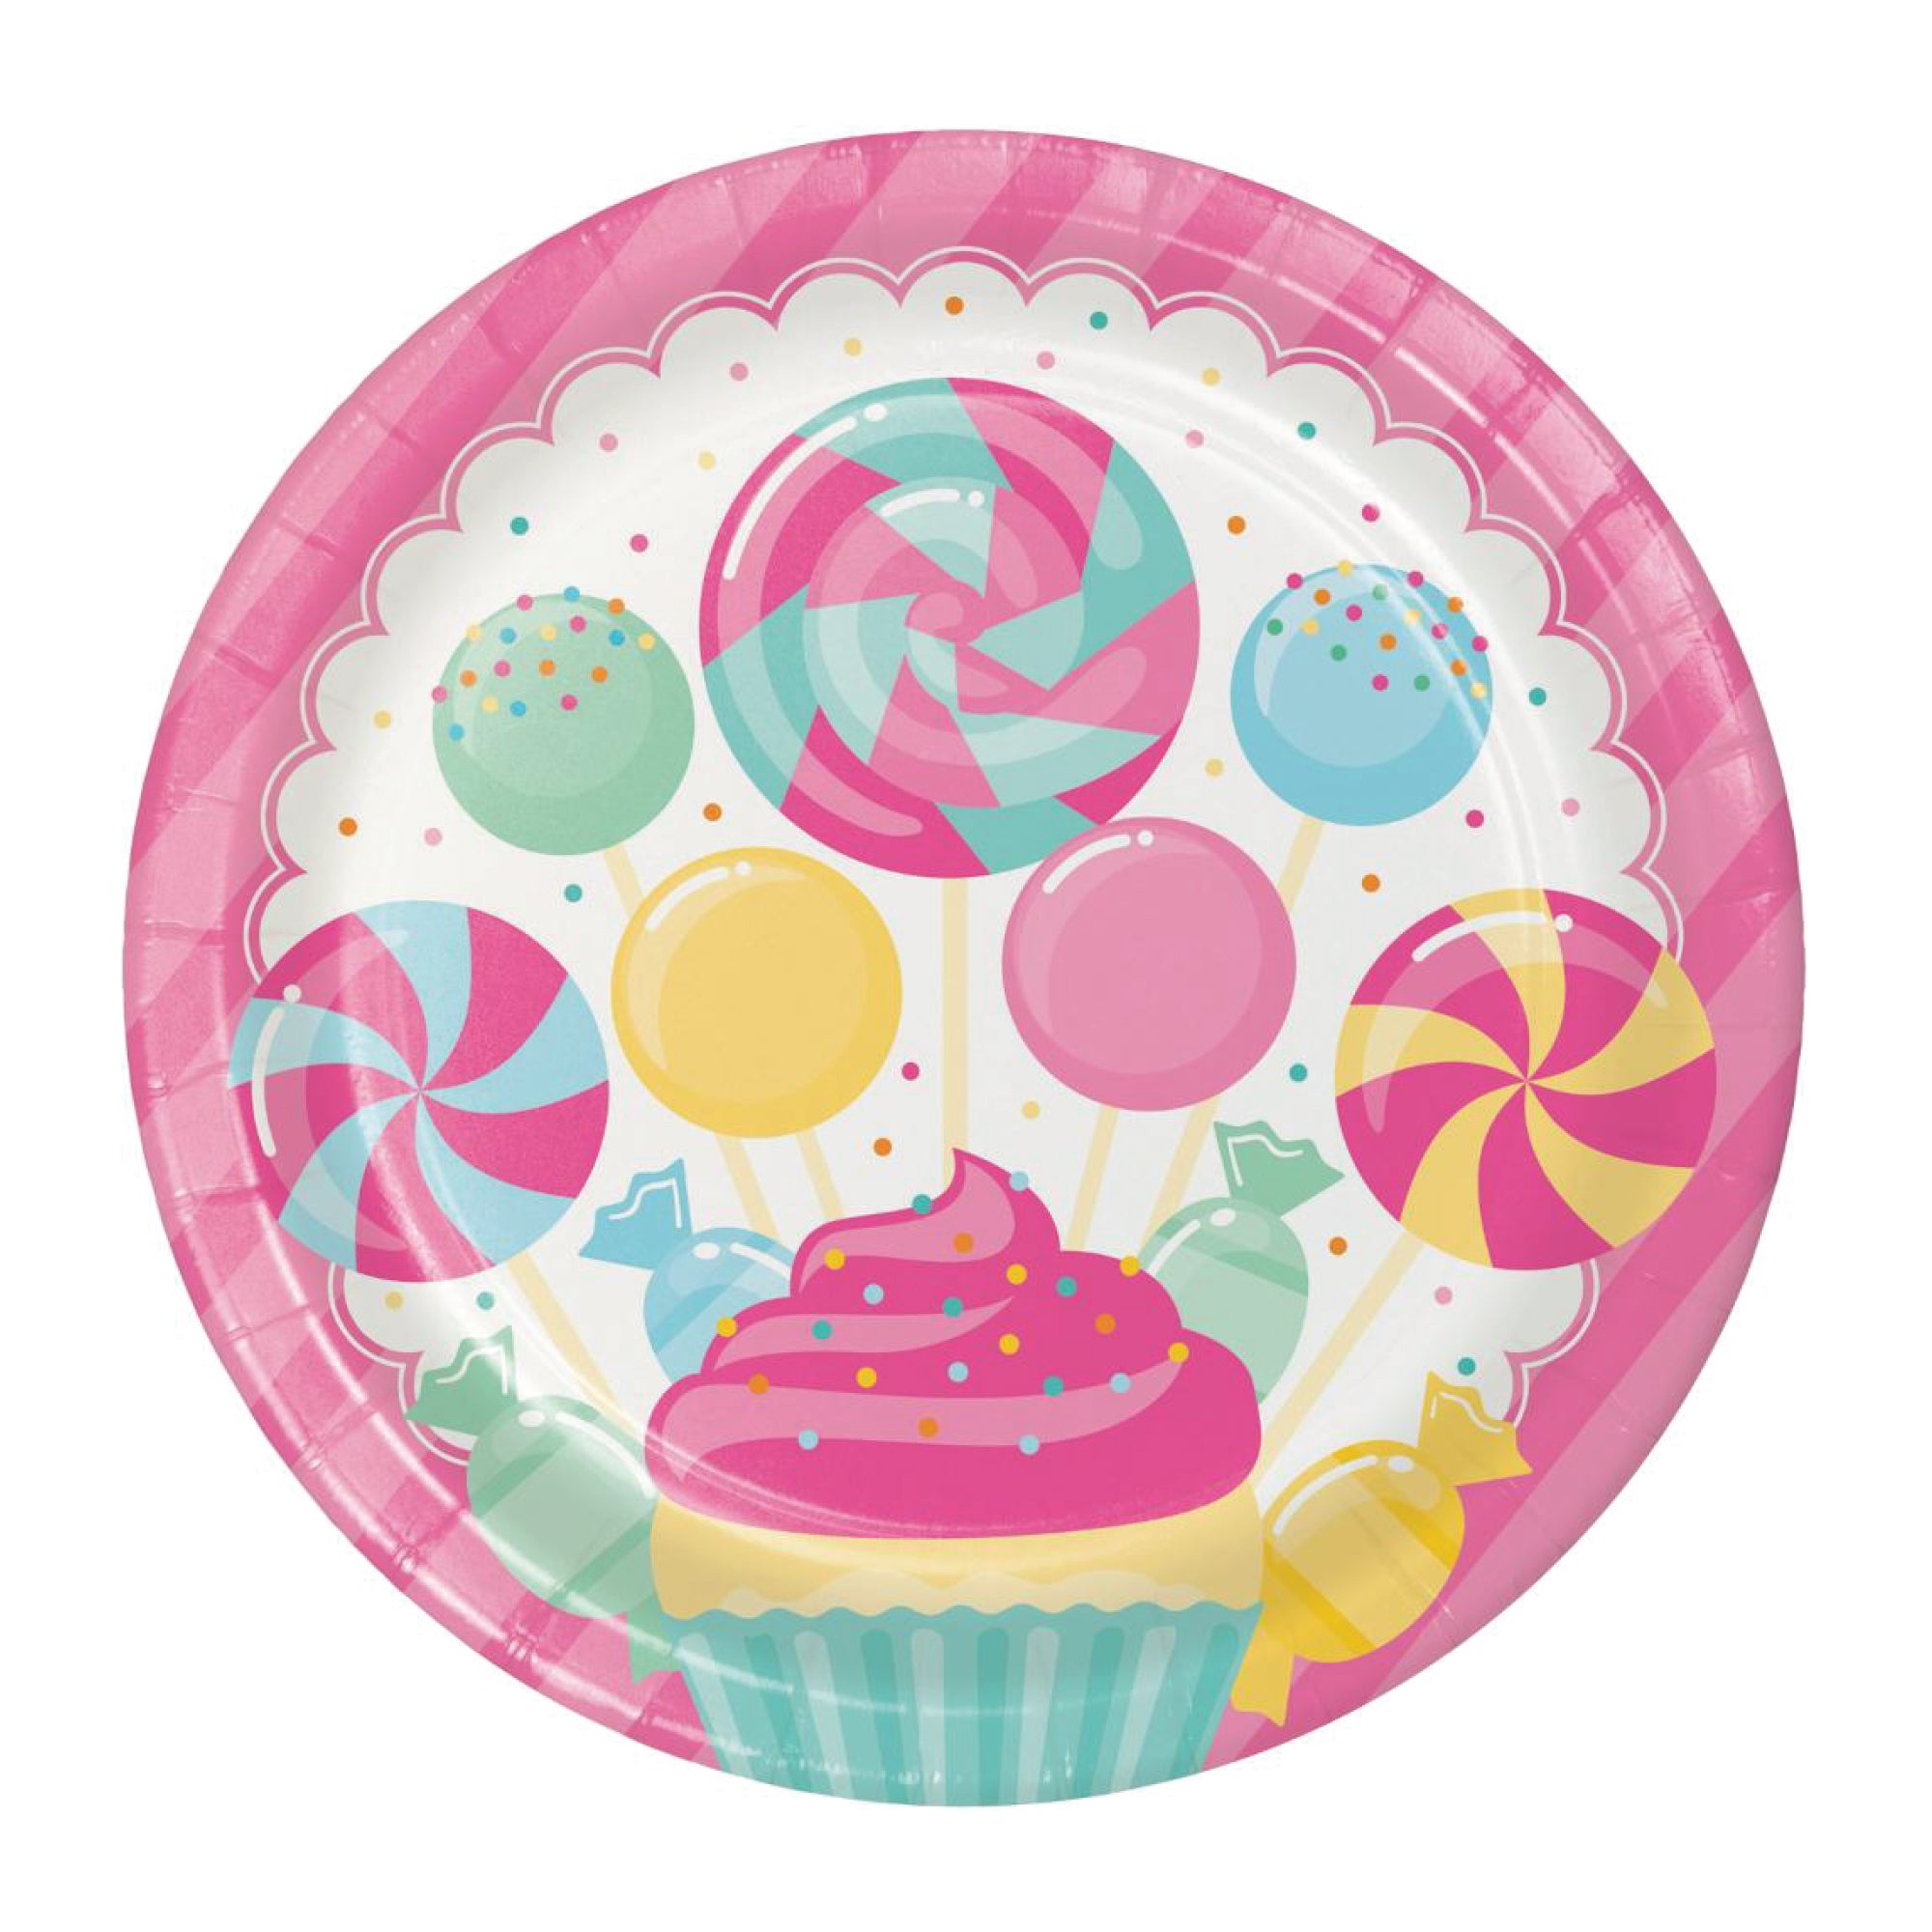 Candy Shop Lunch Plates 8ct | The Party Darling